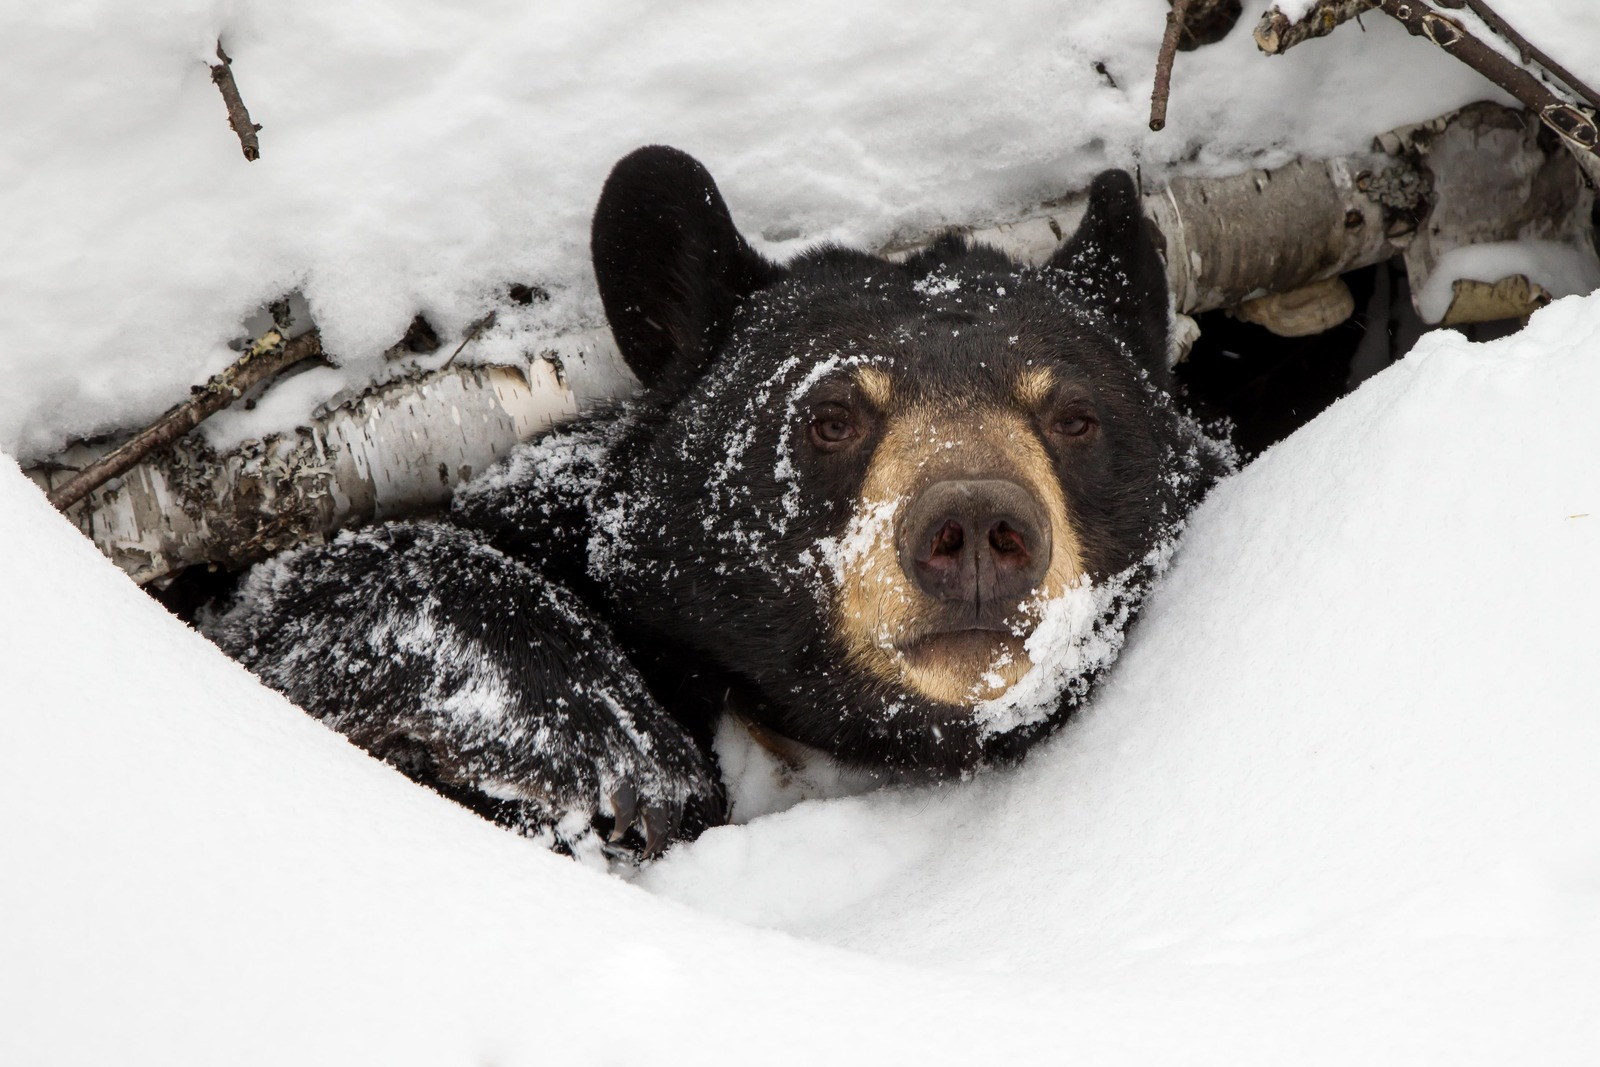 This image, featuring a bear named Lily, is the winner of SciFri's 2013 Winter Nature Photo Contest. Photo by Jim Stroner